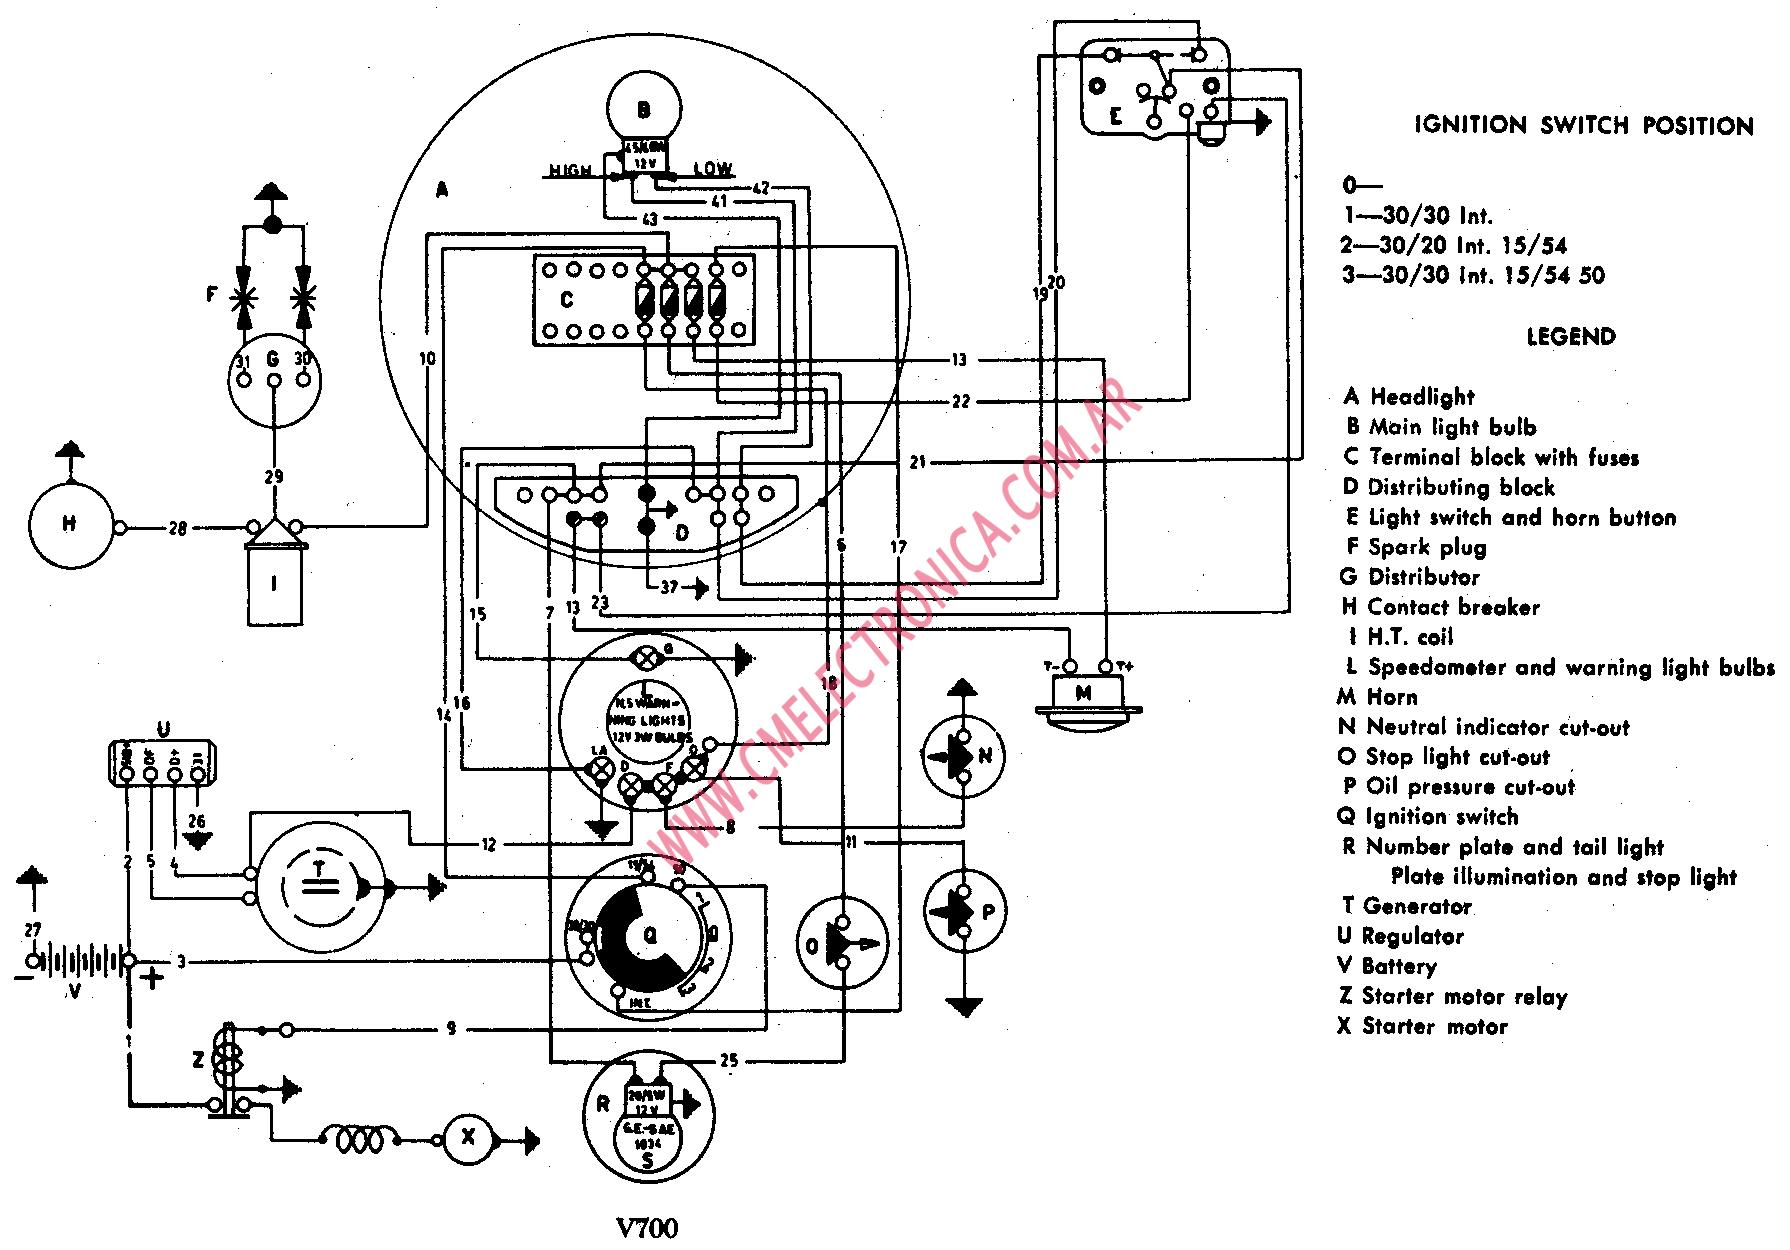 2001 Yzf R1 Wiring Diagram Hd Quality  U2611 Ebooks